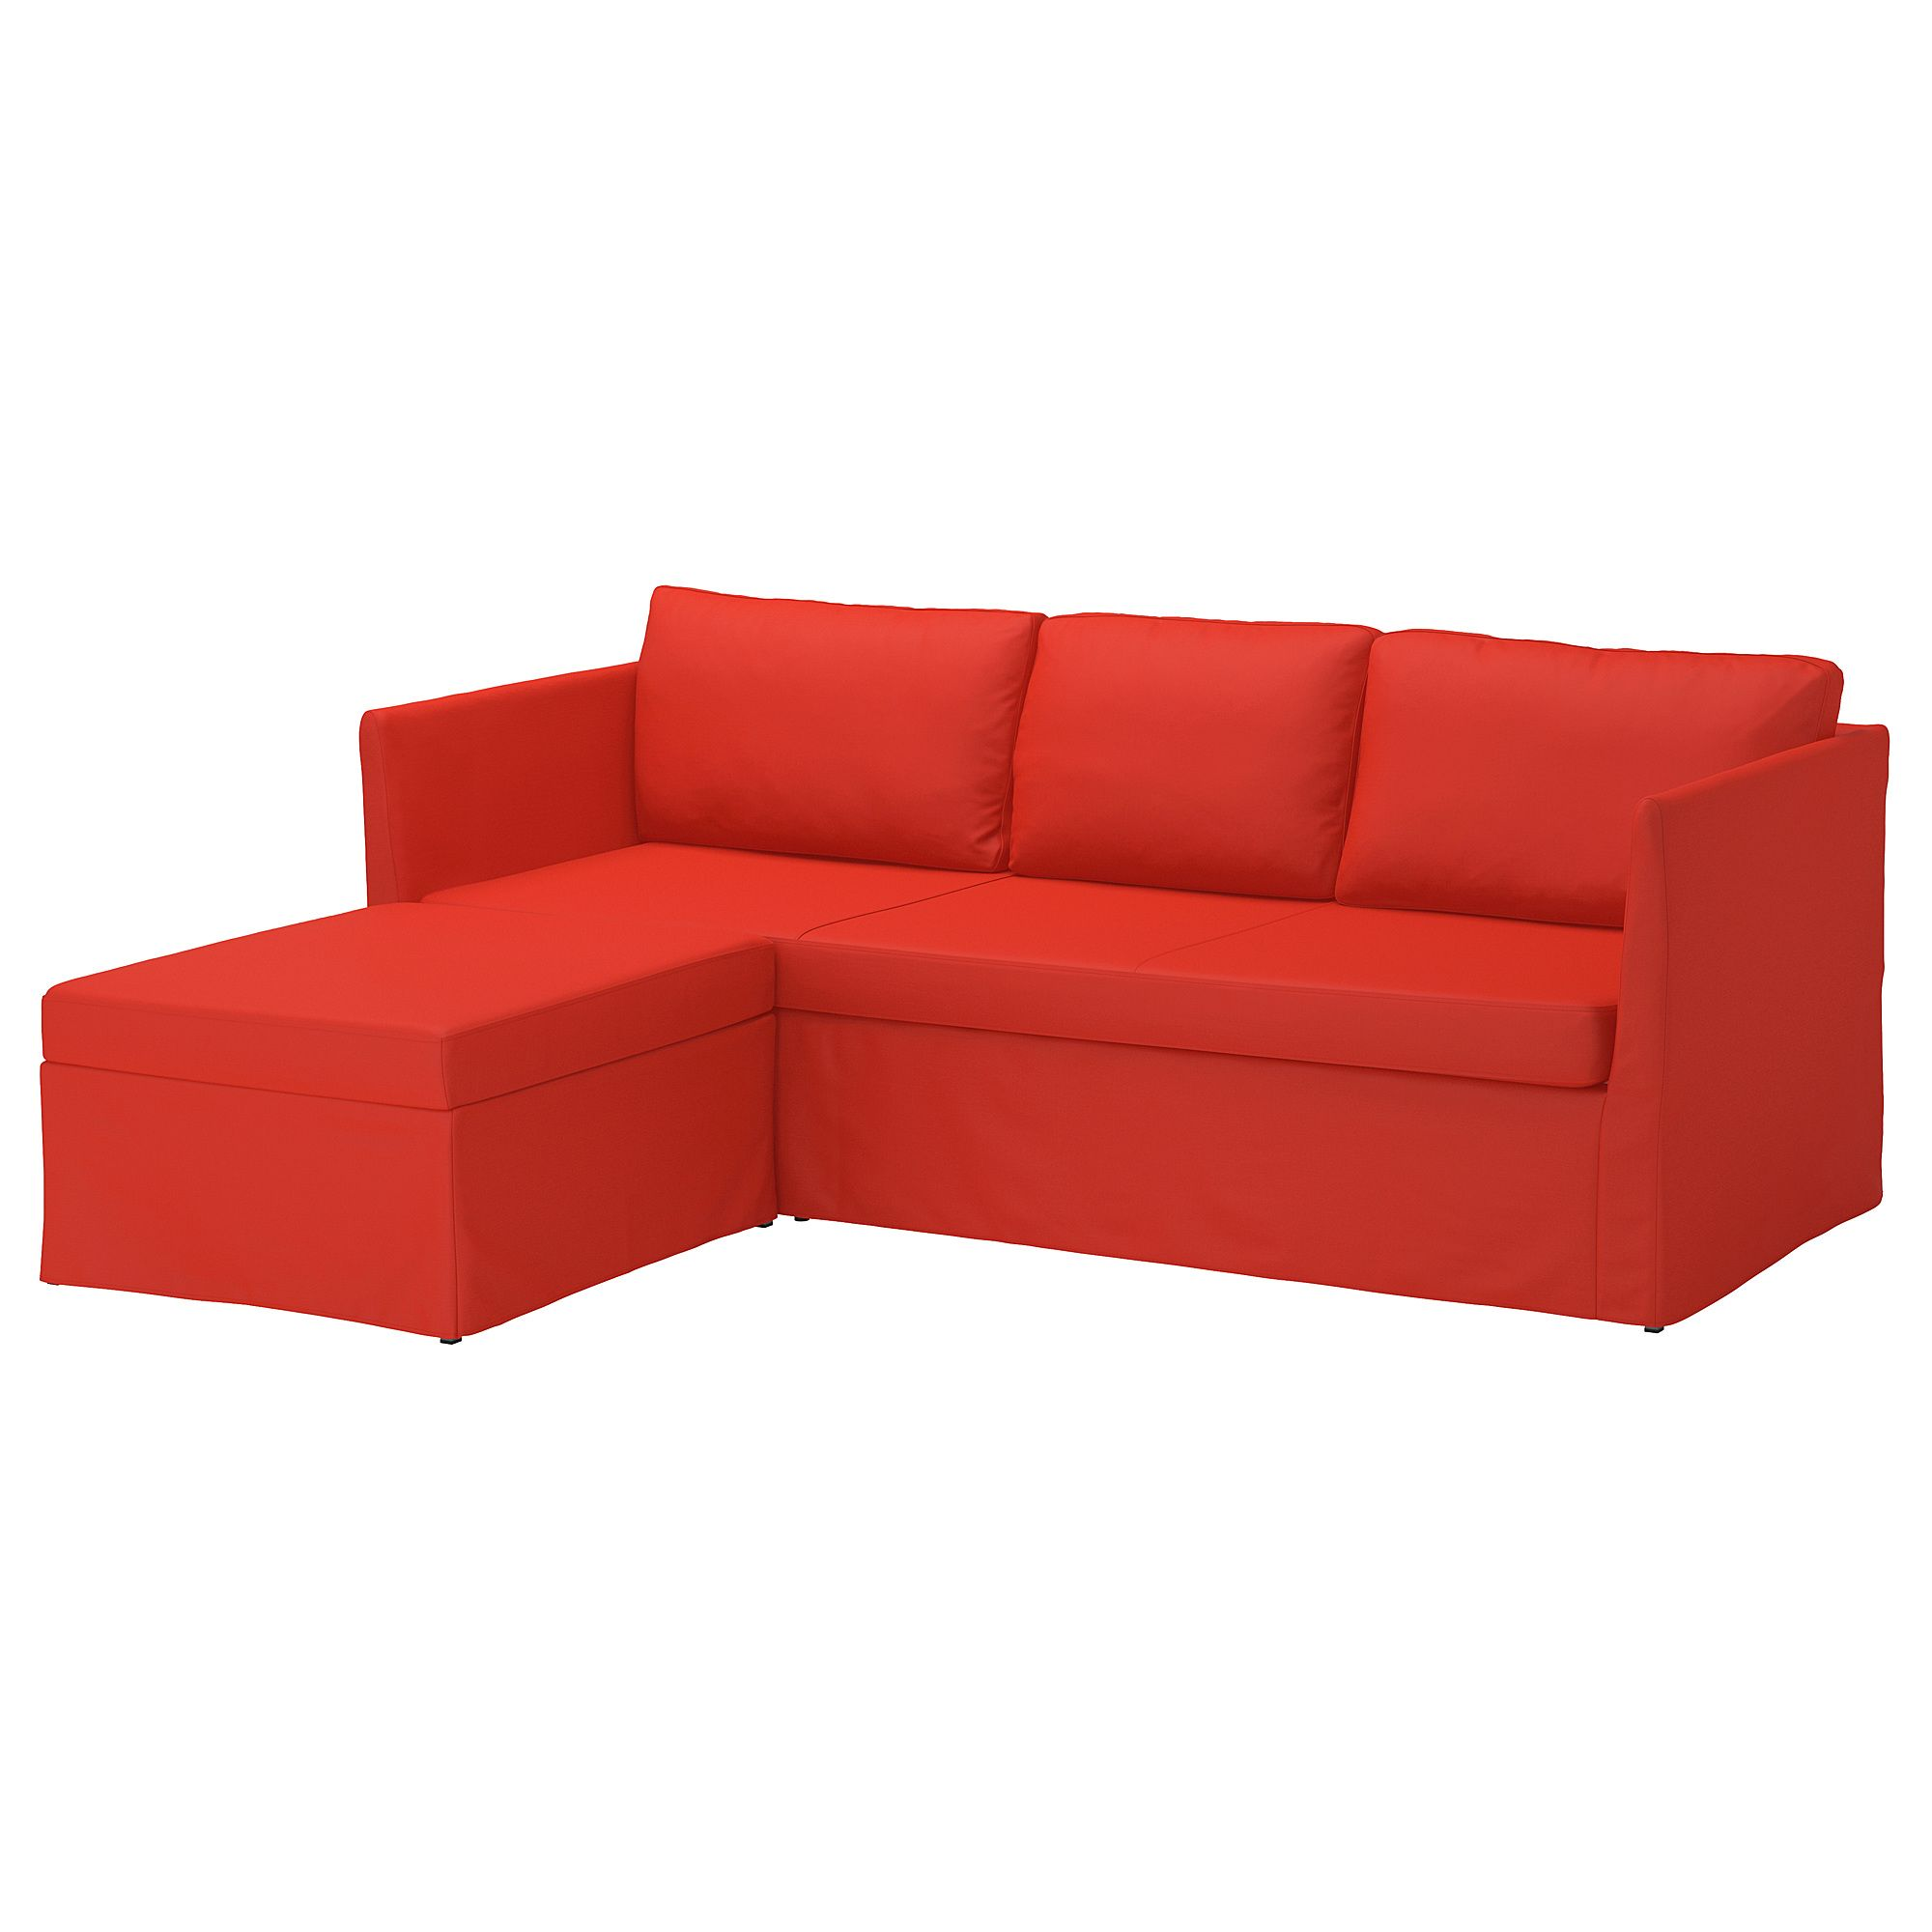 Rotes Sofa Ikea BrÅthult Ecksofa 3 Sitzig Vissle Rot Orange In 2019 Products